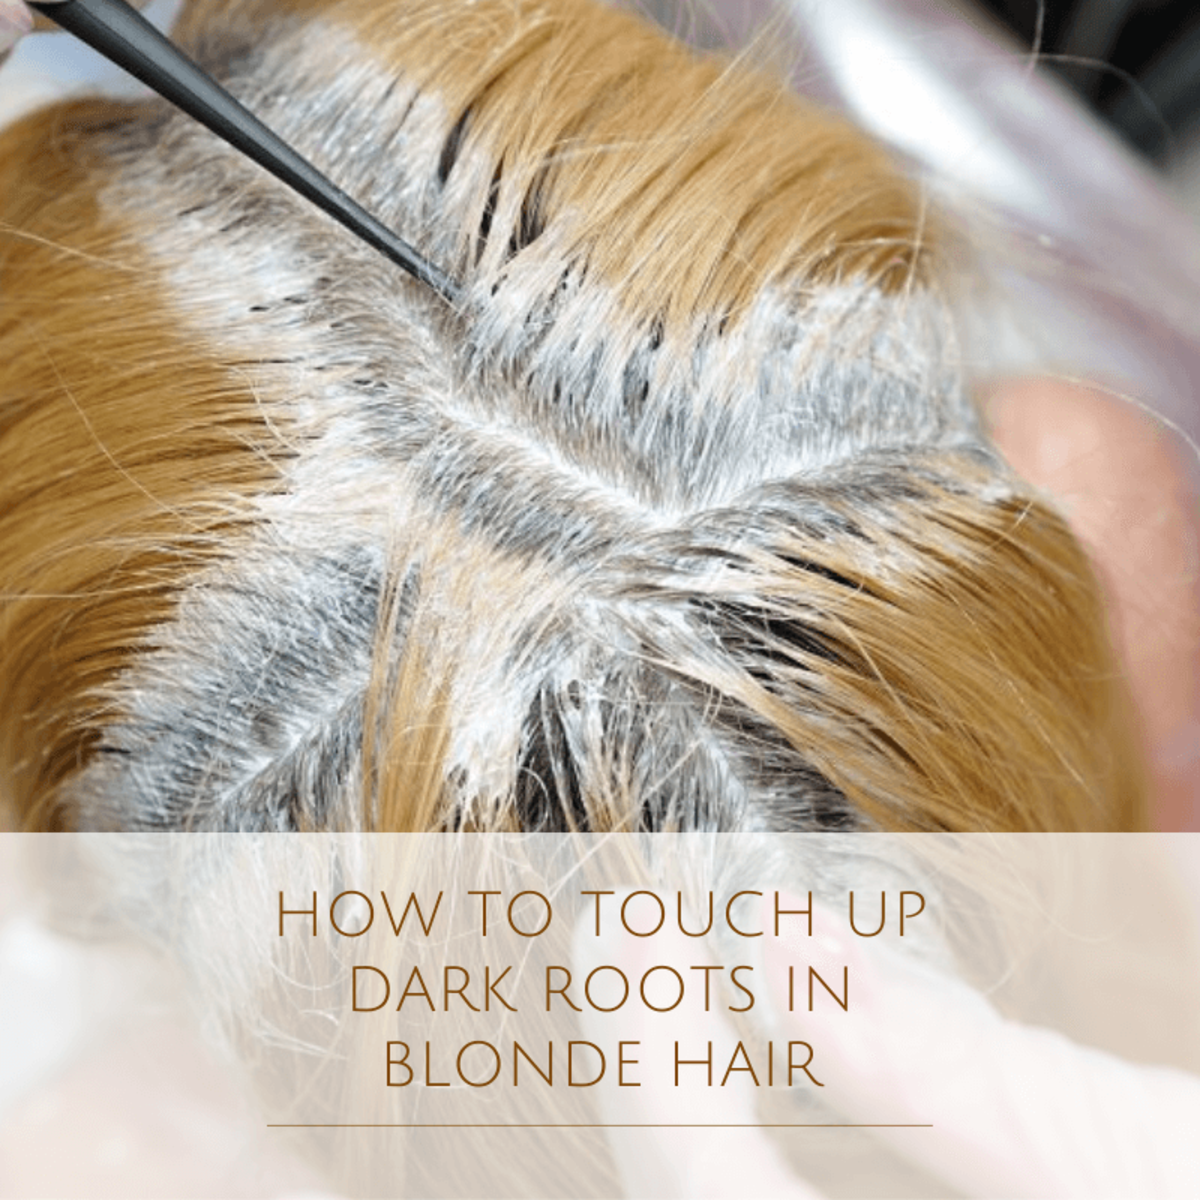 how-to-touch-up-dark-roots-in-blonde-hair